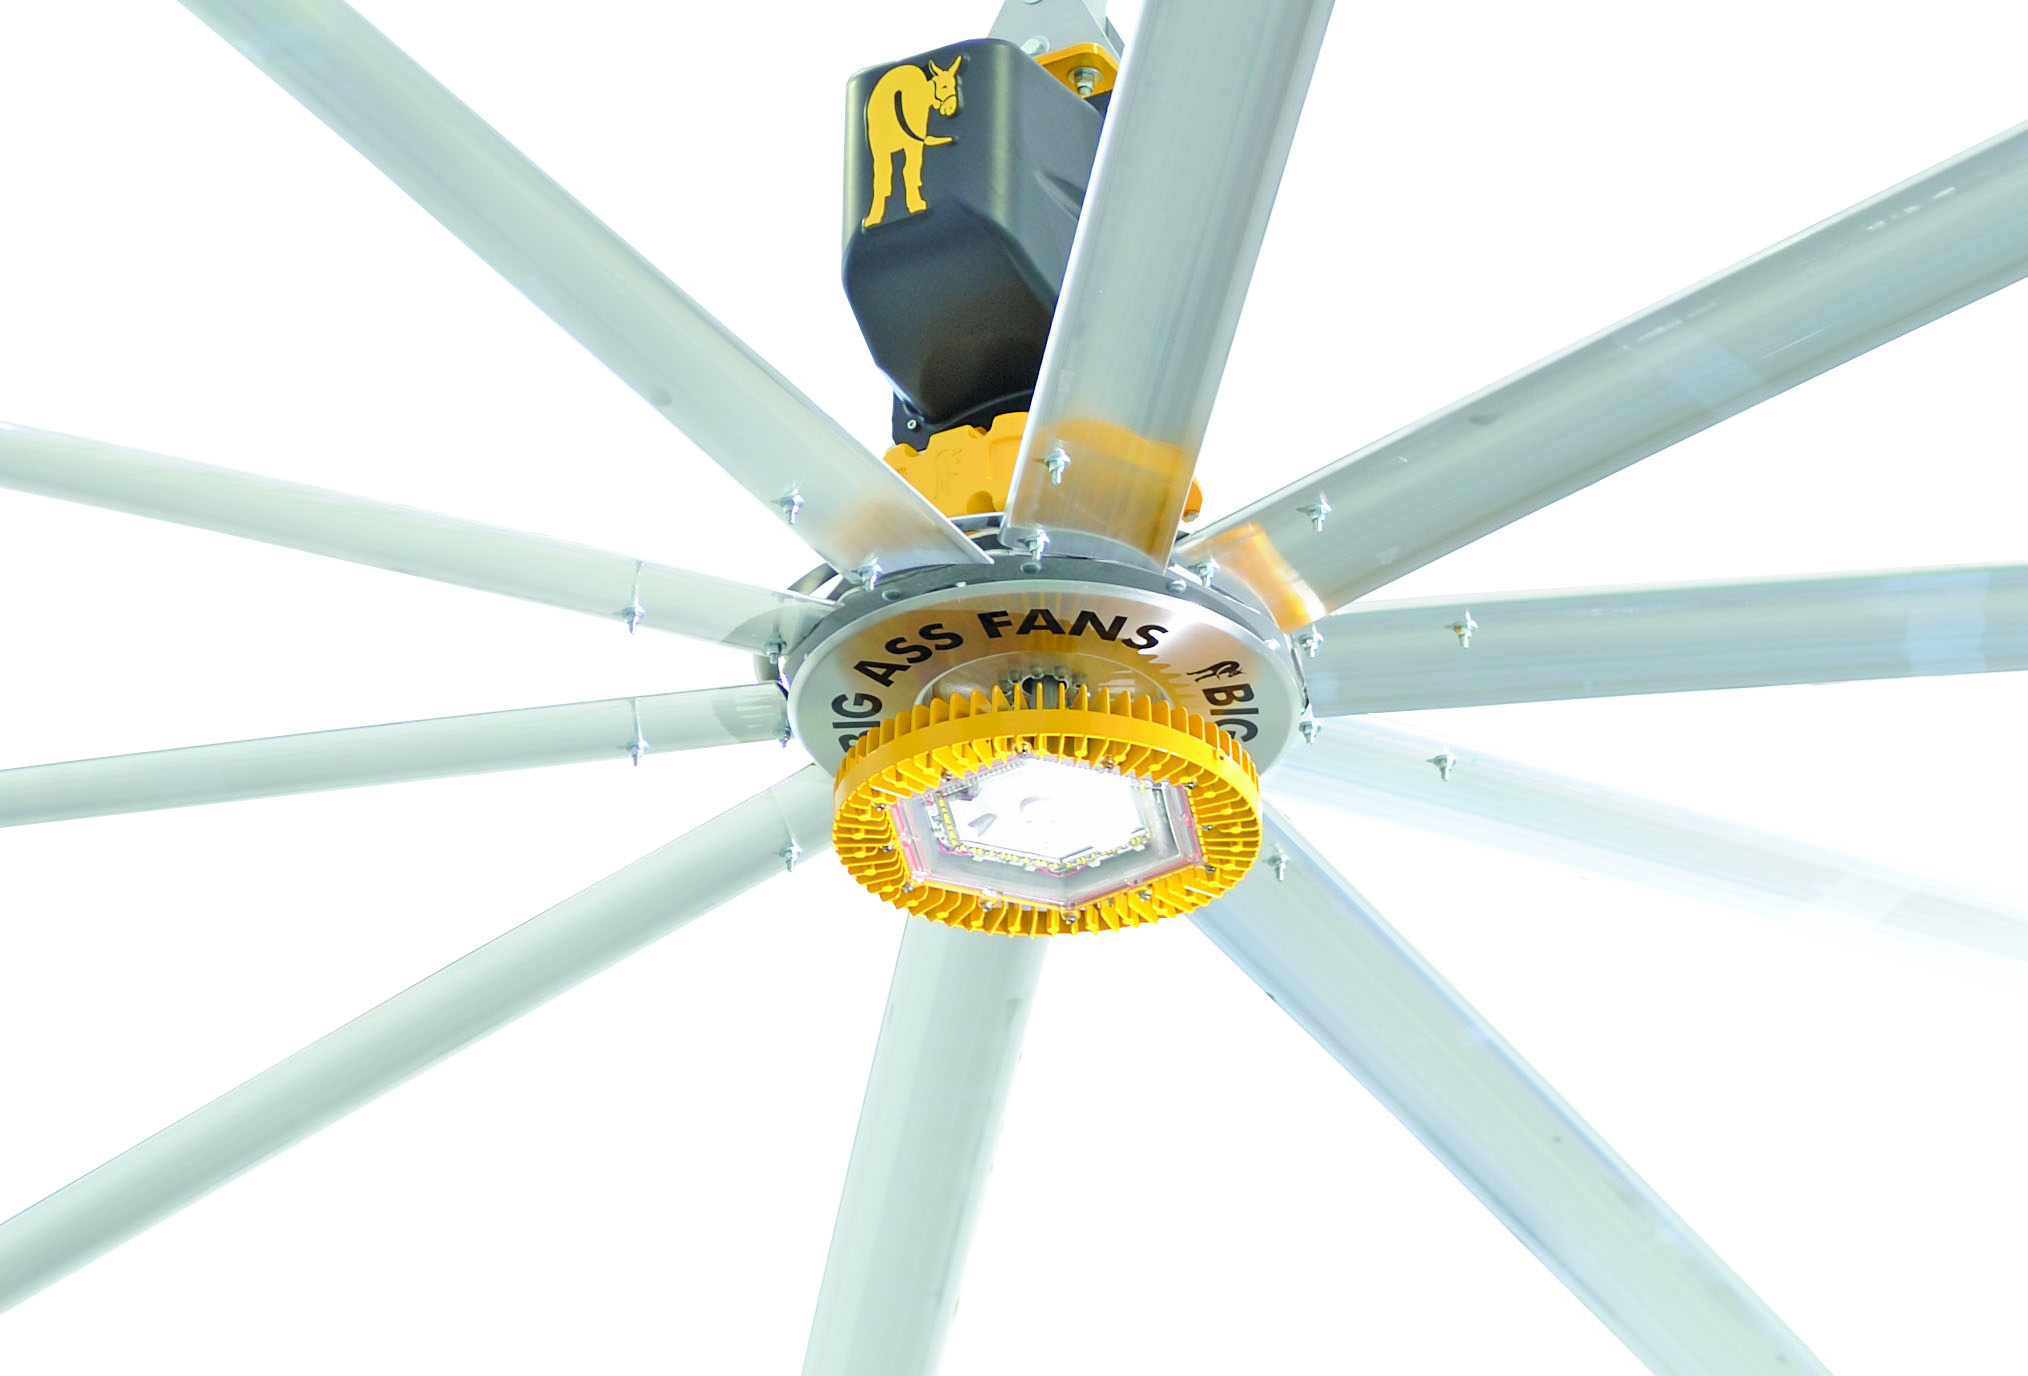 A First LED Equipped Industrial Ceiling Fan